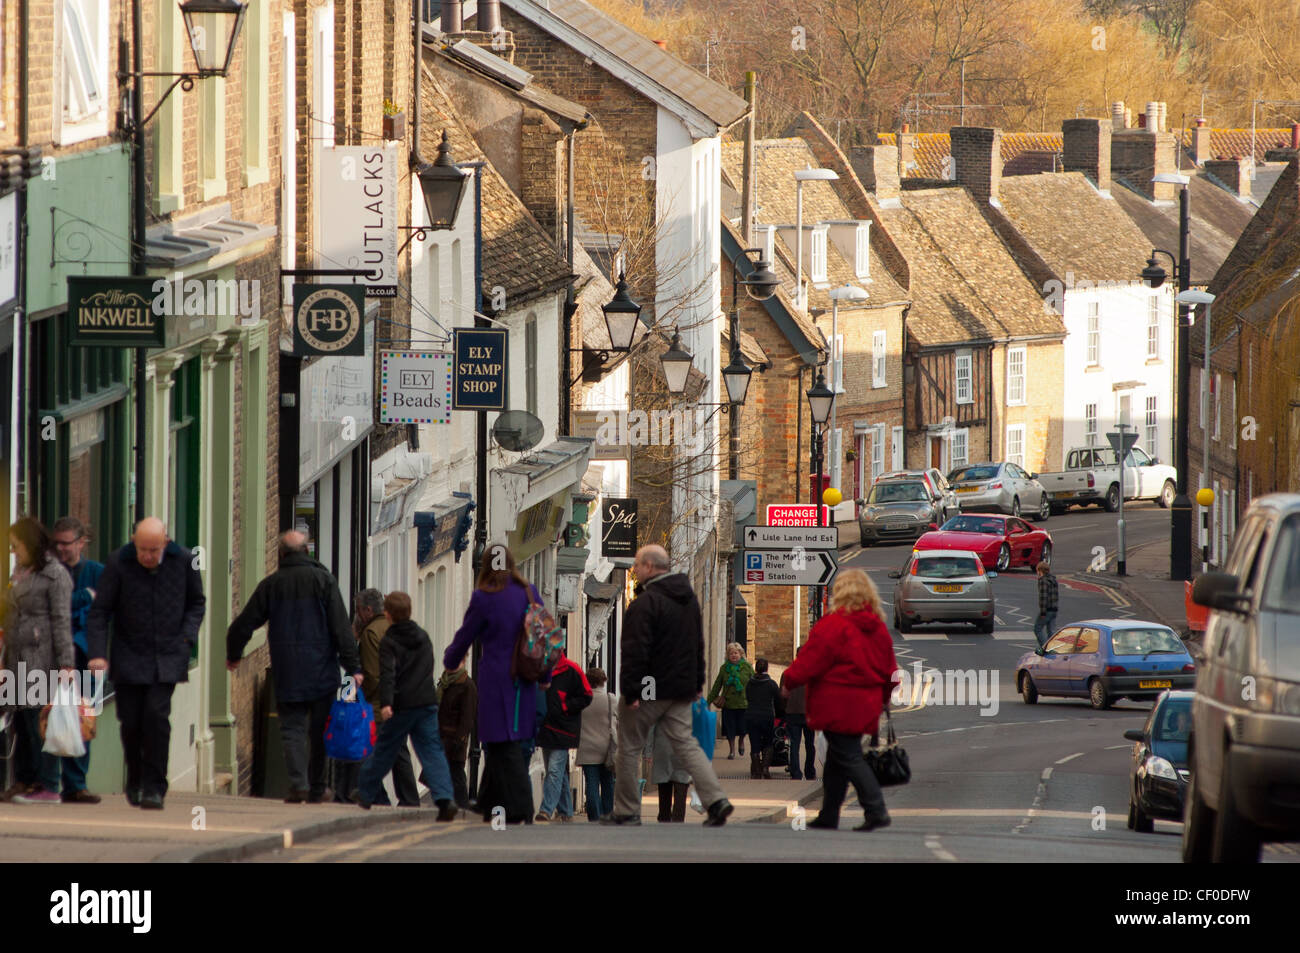 Local people shopping with view down Fore Hill in city of Ely, Cambridgeshire, England. - Stock Image